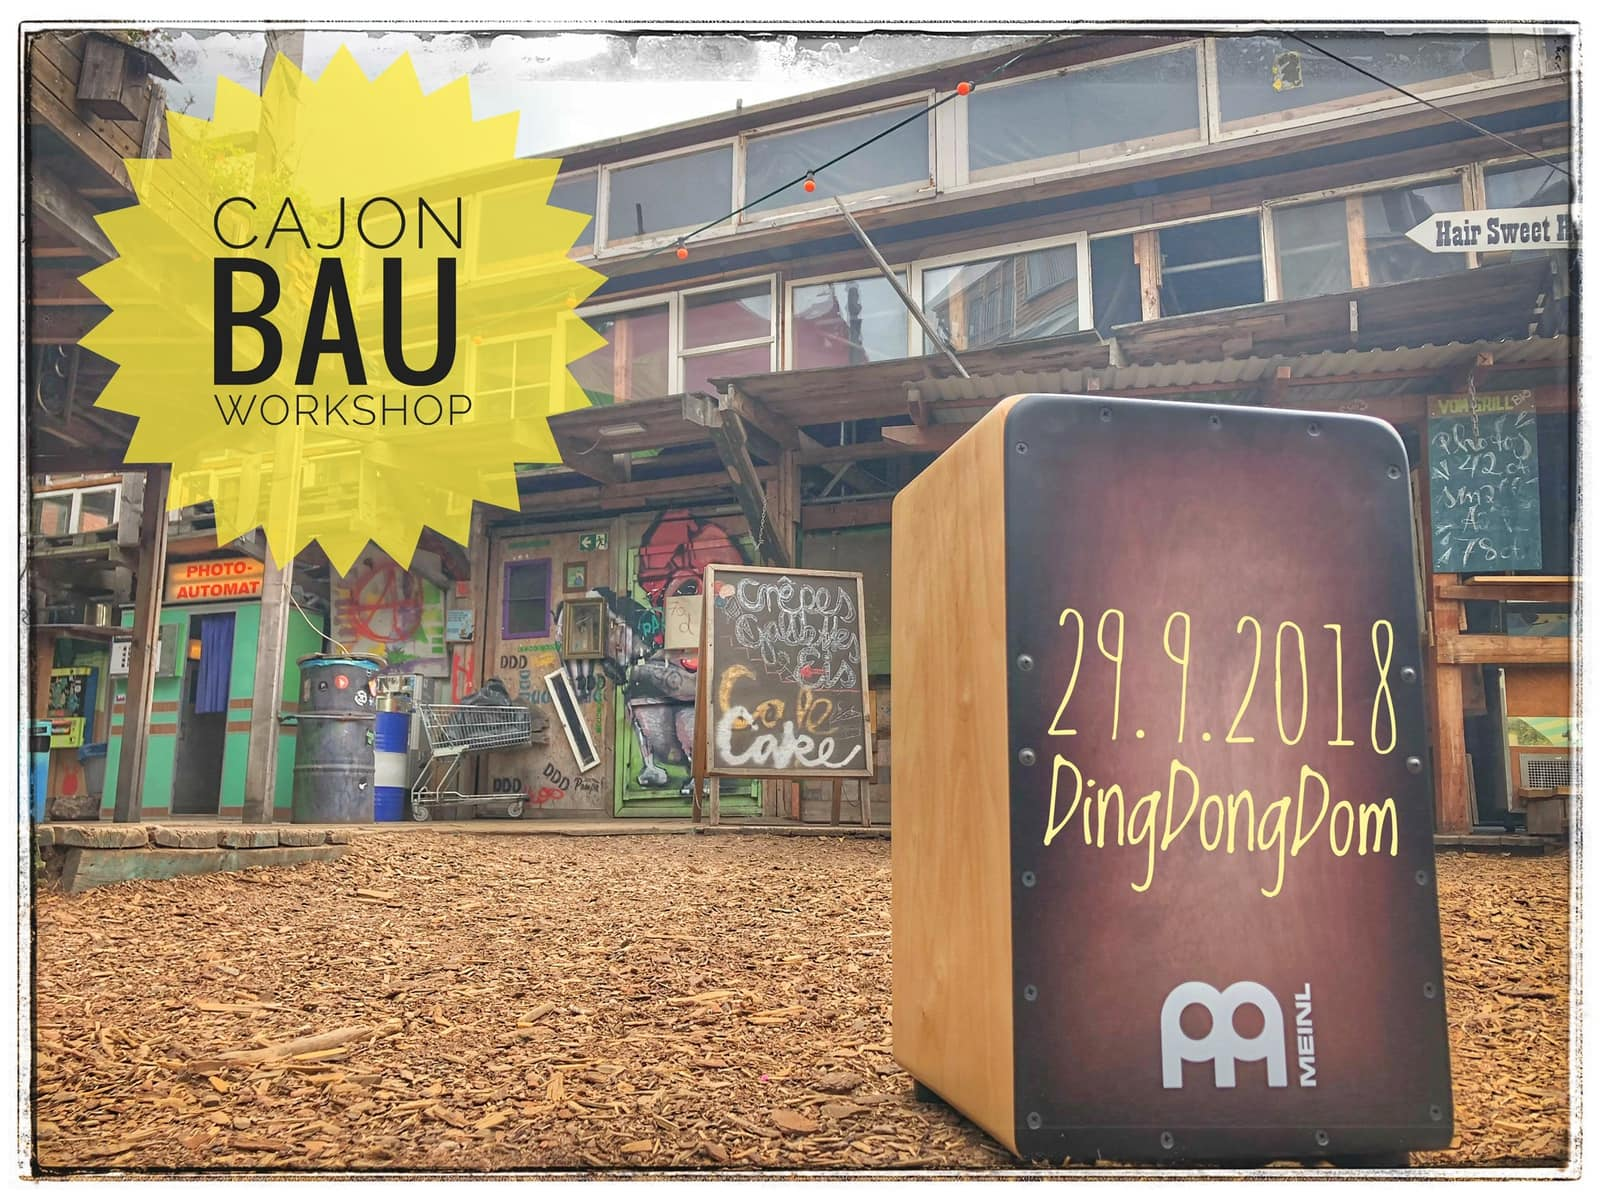 Cajon-Bau-Workshop